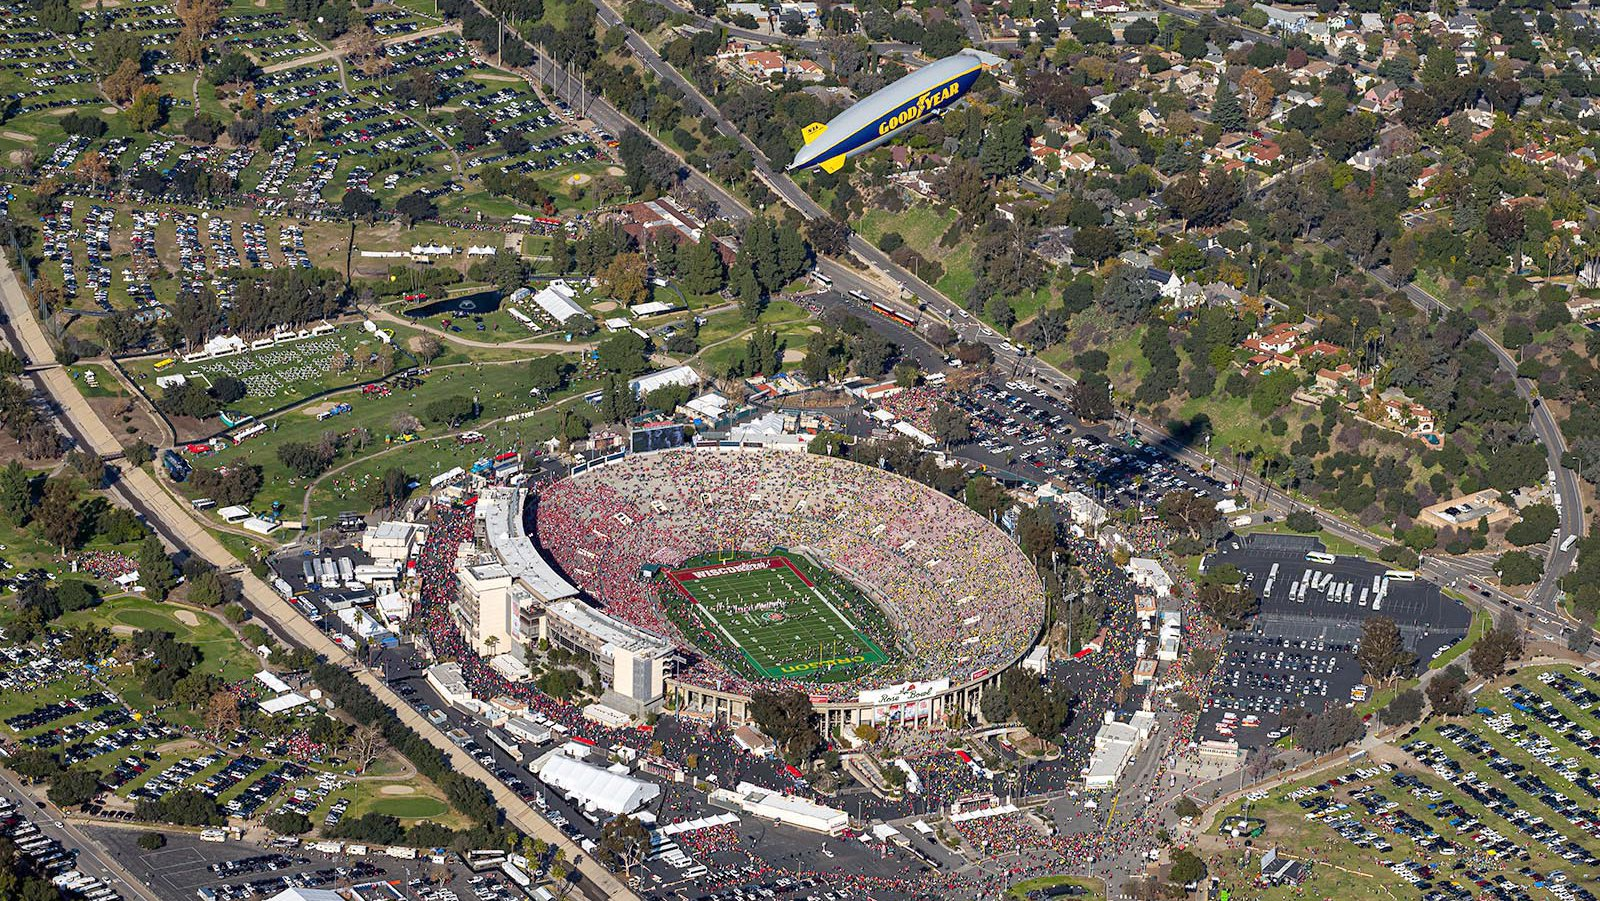 Blog image of the Goodyear Blimp Flying over the Rose Bowl Stadium on New Year's Day 2020 in Pasadena, California